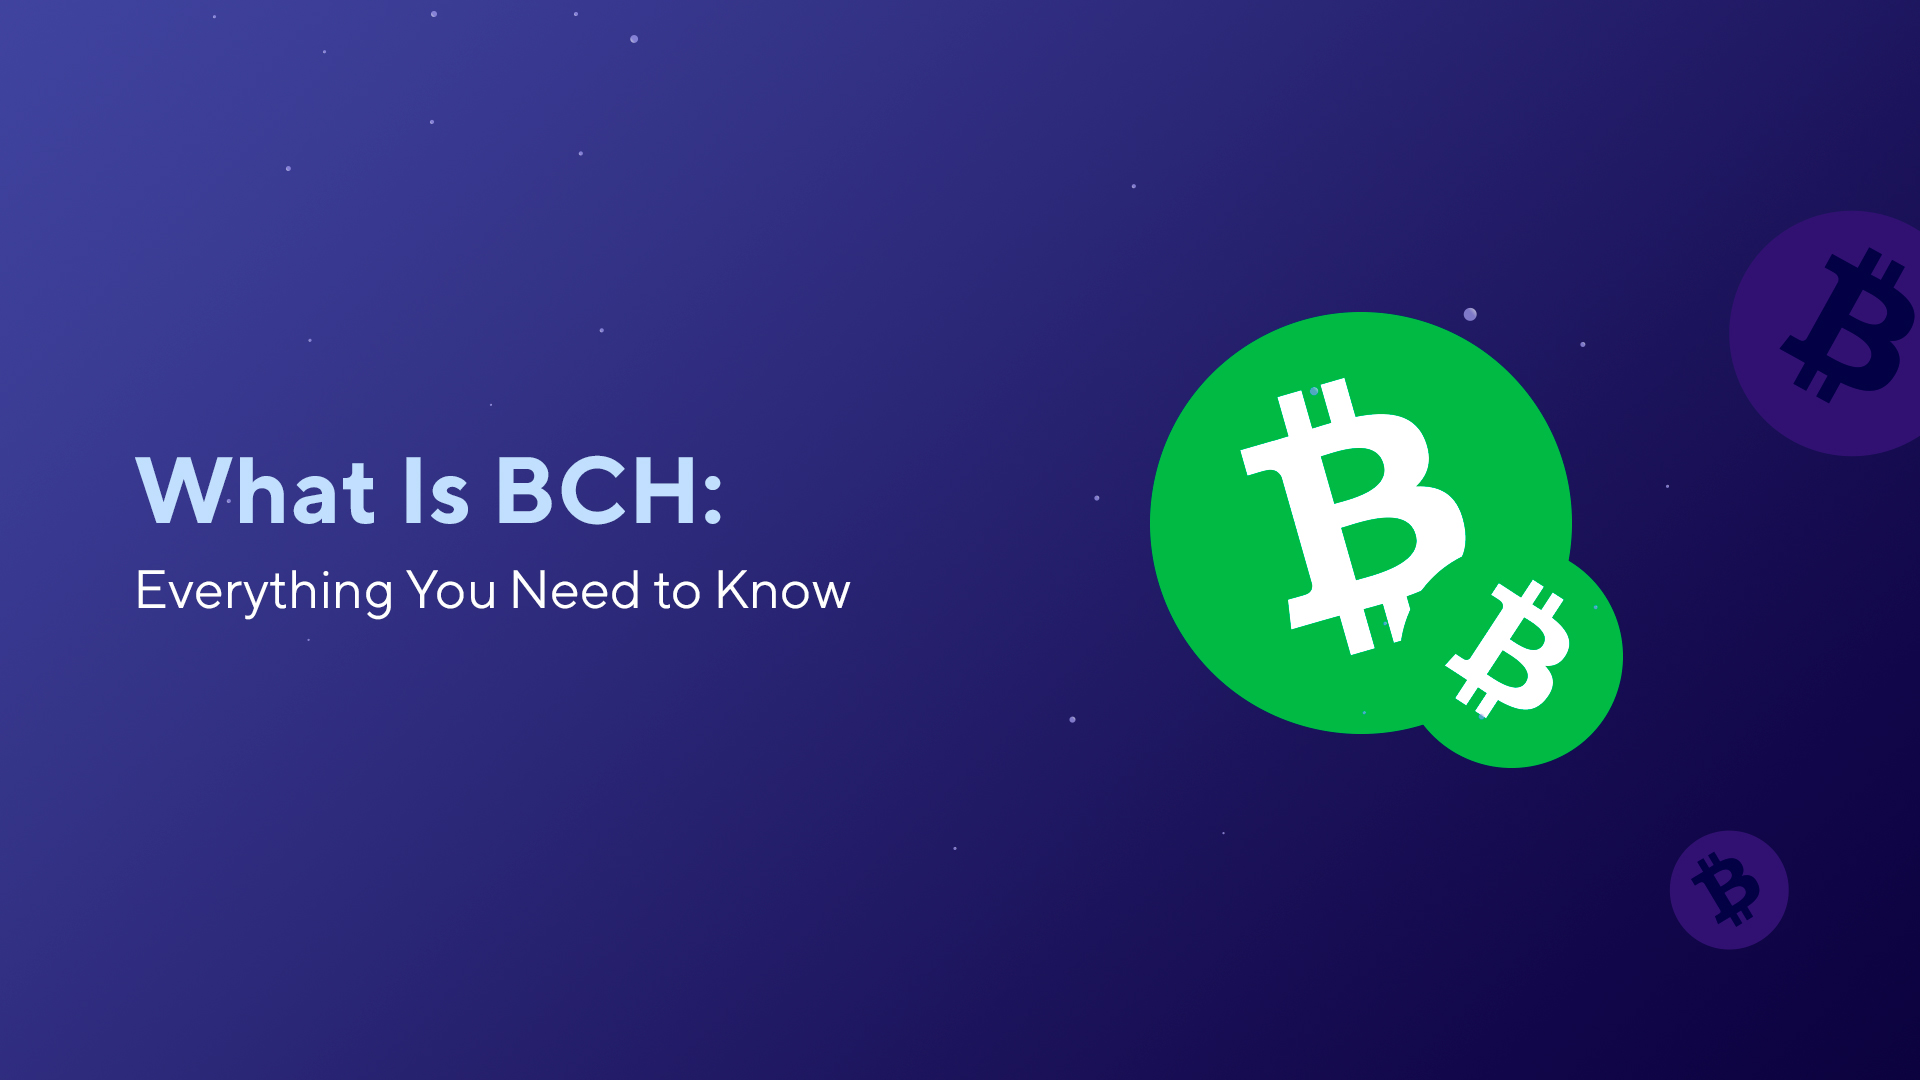 What Is BCH: Everything You Need to Know